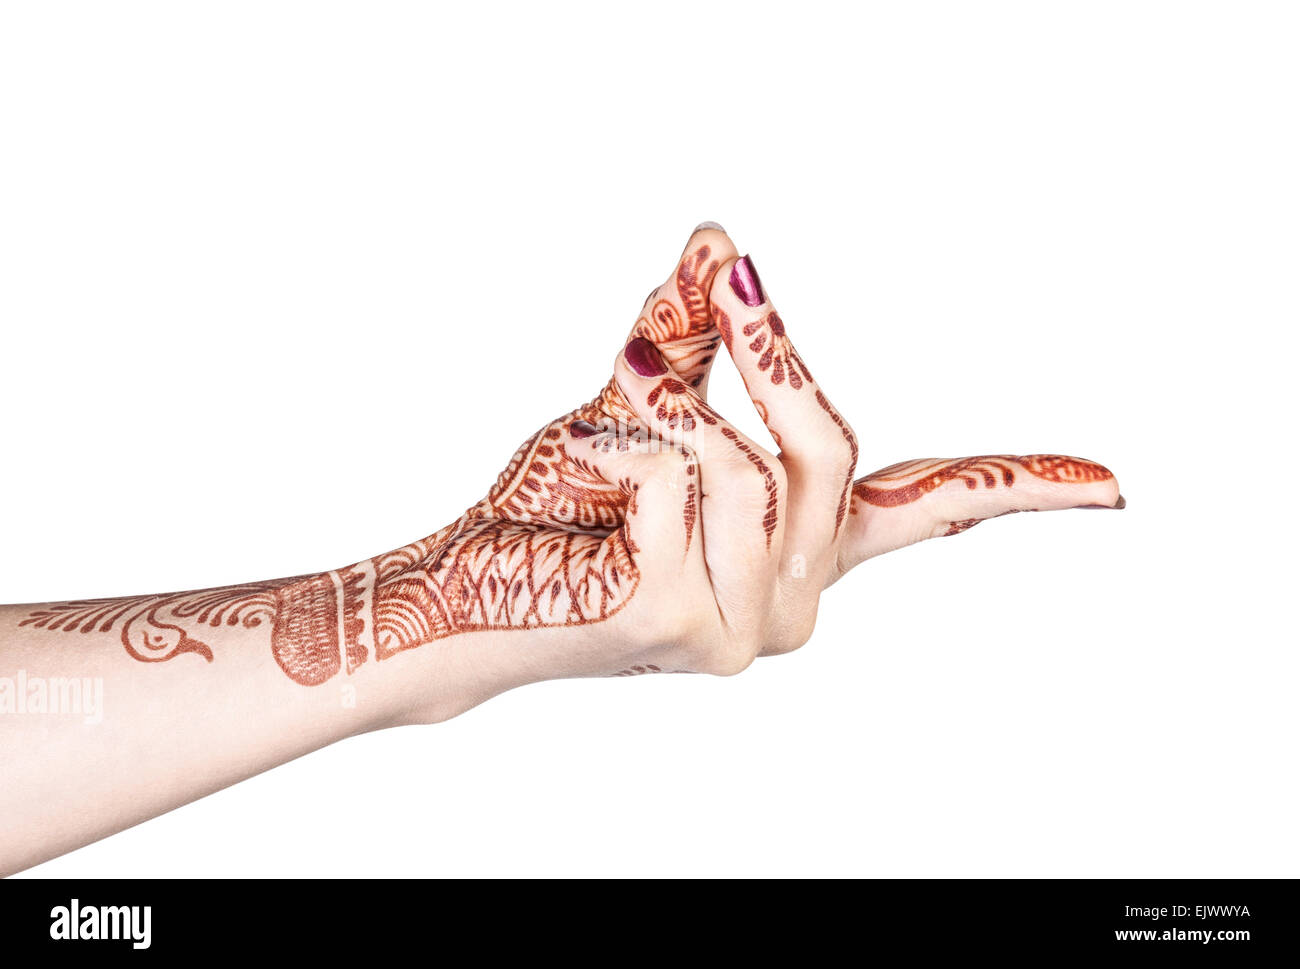 Woman hand with henna doing Bronchial mudra isolated on white background with clipping path - Stock Image